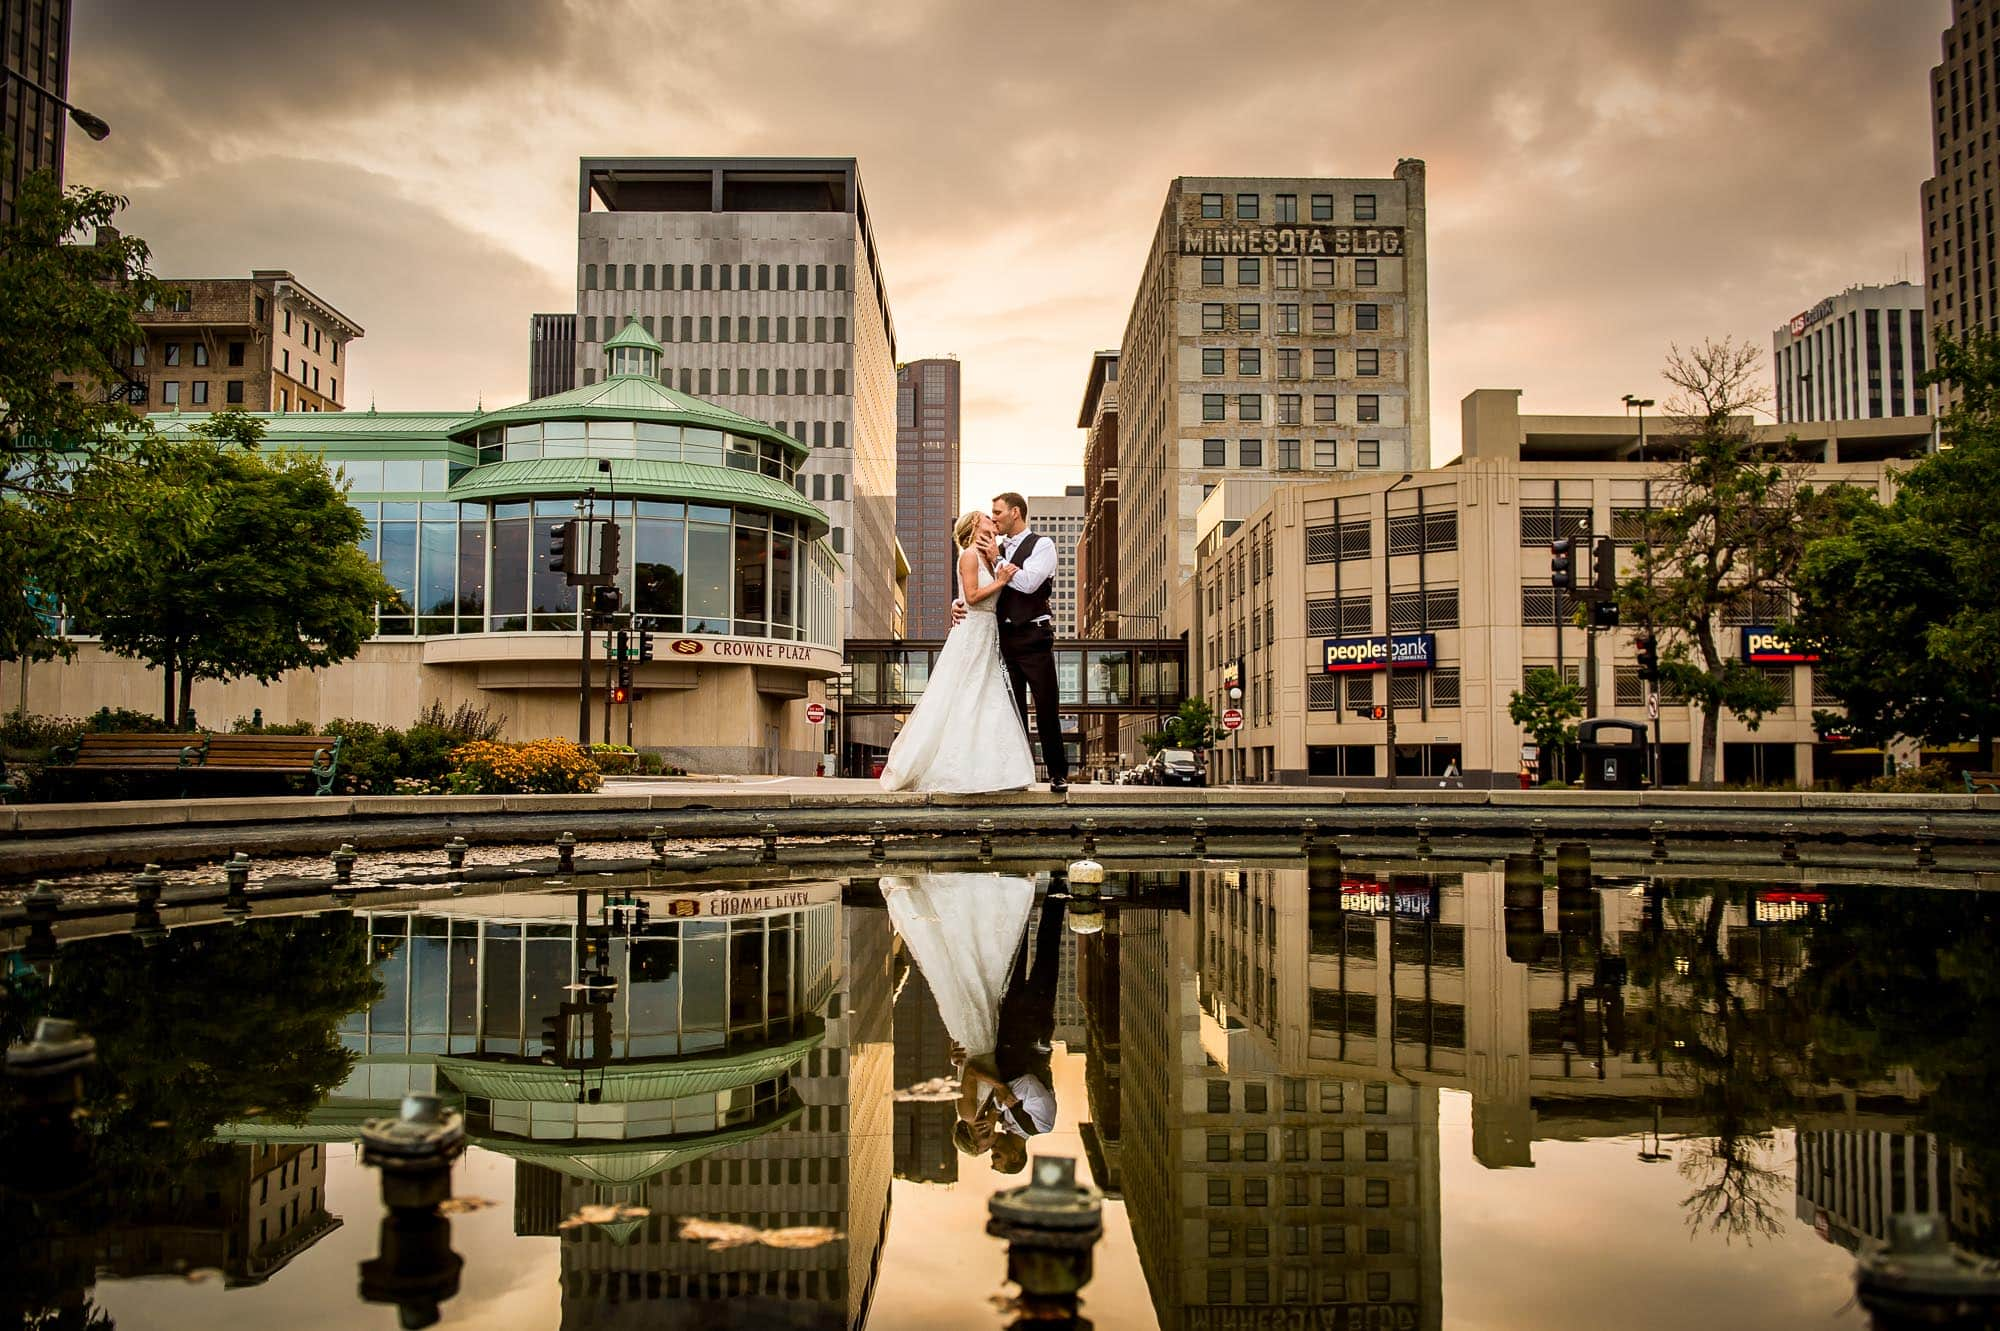 Wedding Photography displaying a Bride and Groom kissing with downtown Saint Paul, Minnesota in the background with their reflection over the water fountain at sunset.